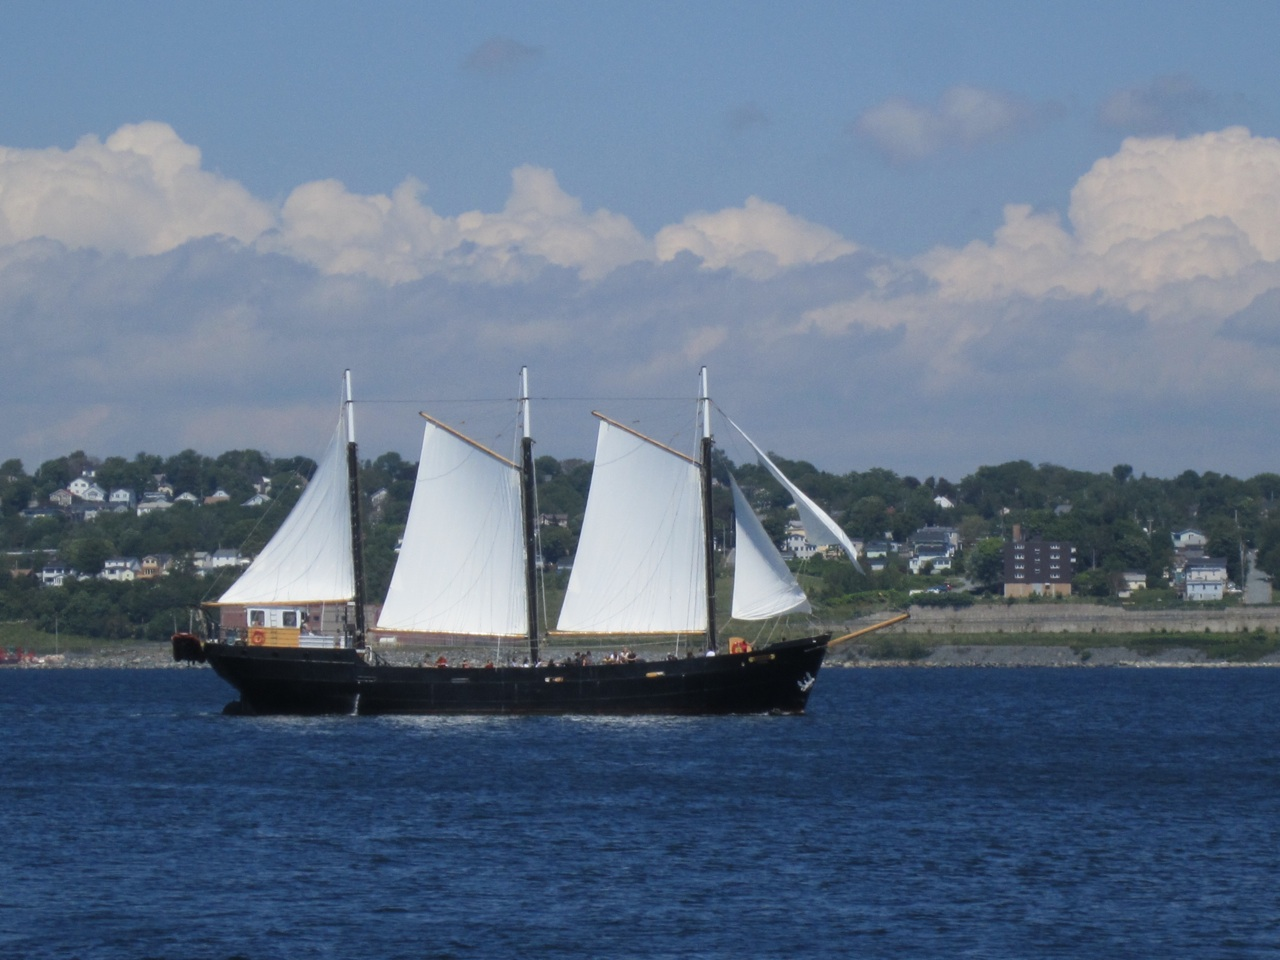 A Tall Ship In The Harbor In Halifax